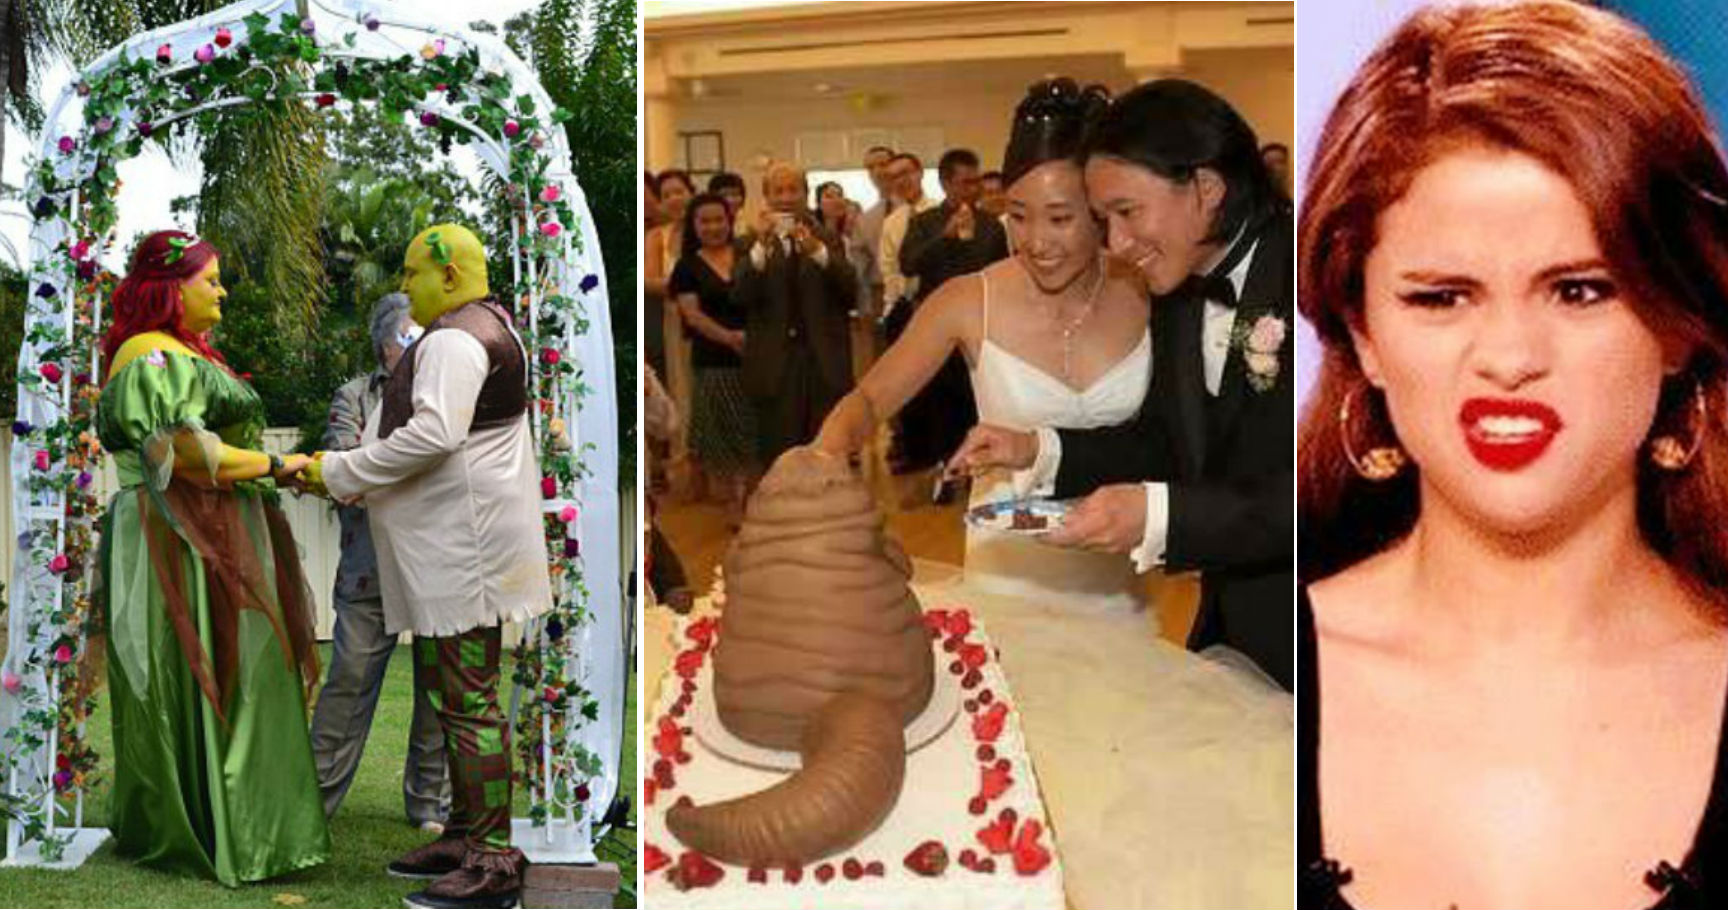 15 Bizarre Wedding Photos That Make Us Want To Stay Single Forever